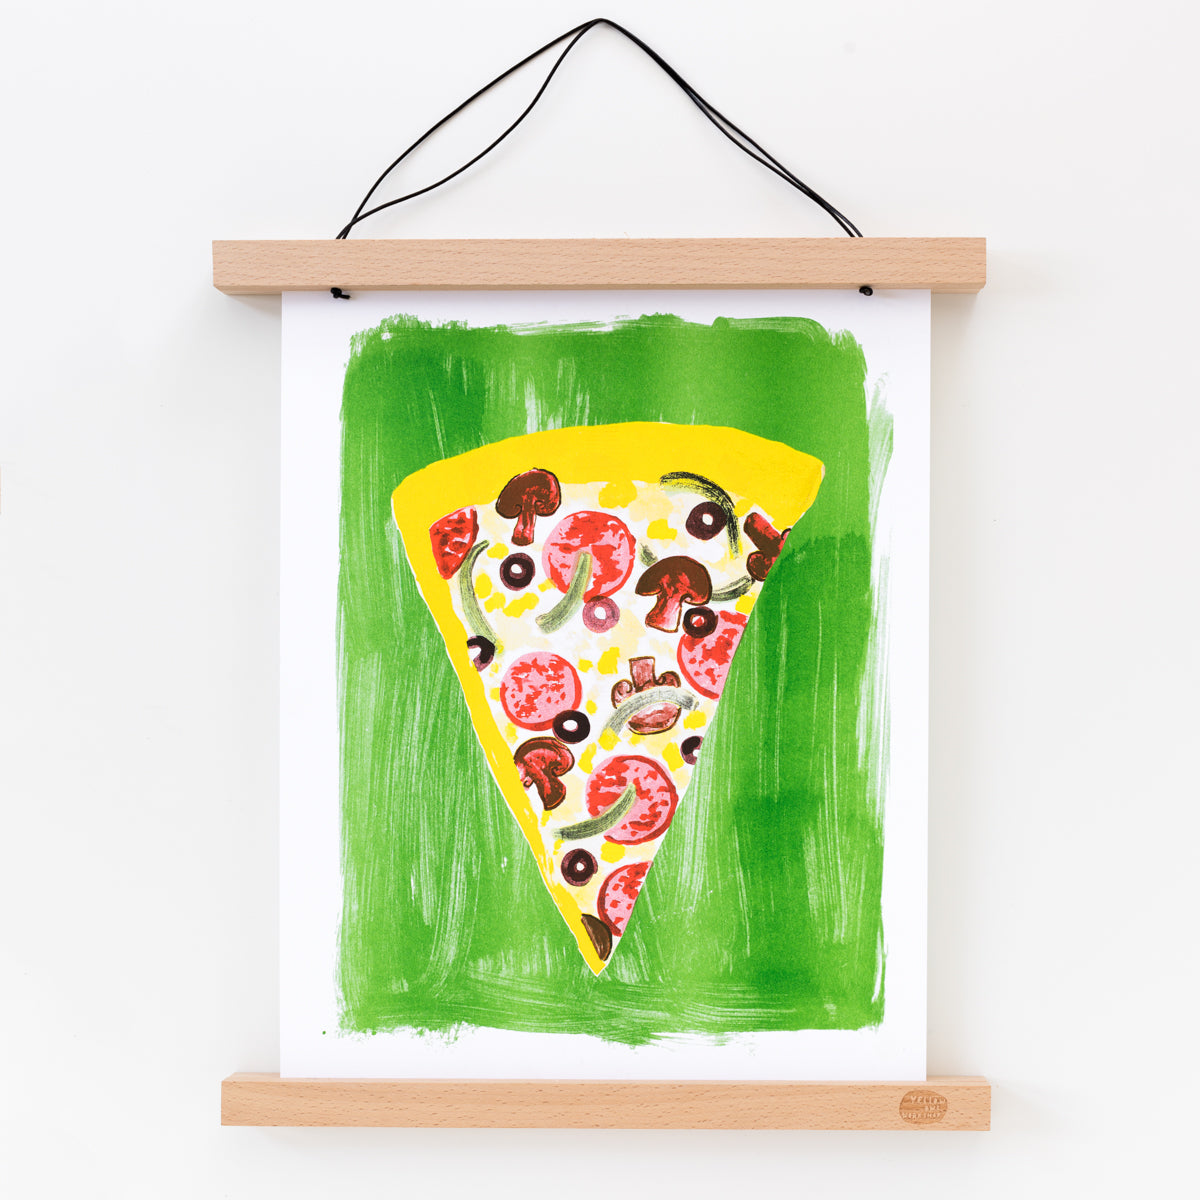 Hand printed Risograph art print of a pizza slice on a green background